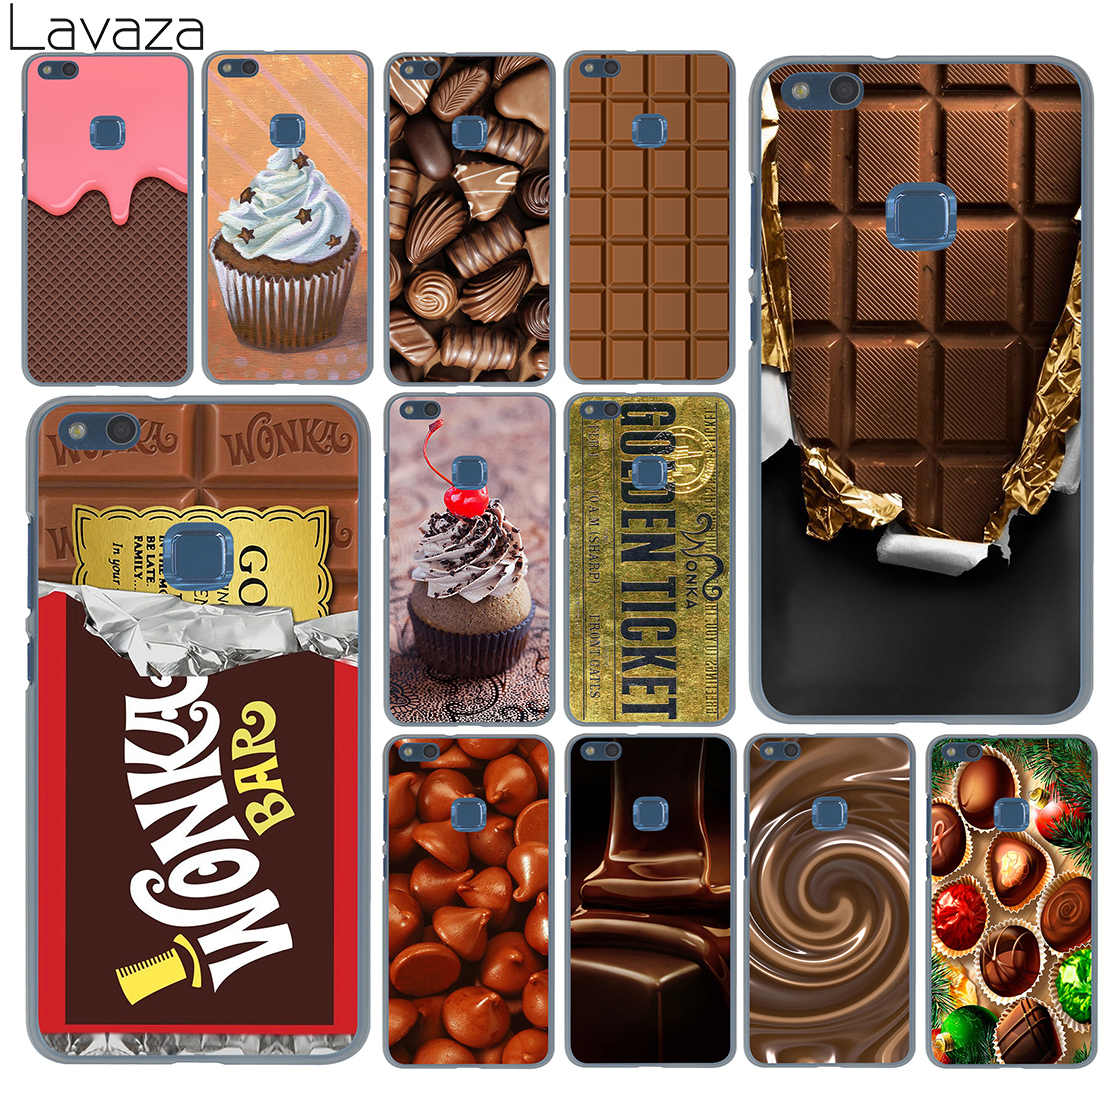 Chocolate Willy Wonka Bar With Golden Ticket Case For Huawei P30 P20 Pro P9 P10 Plus P8 Lite Mini 2016 2017 P Smart Z 2019